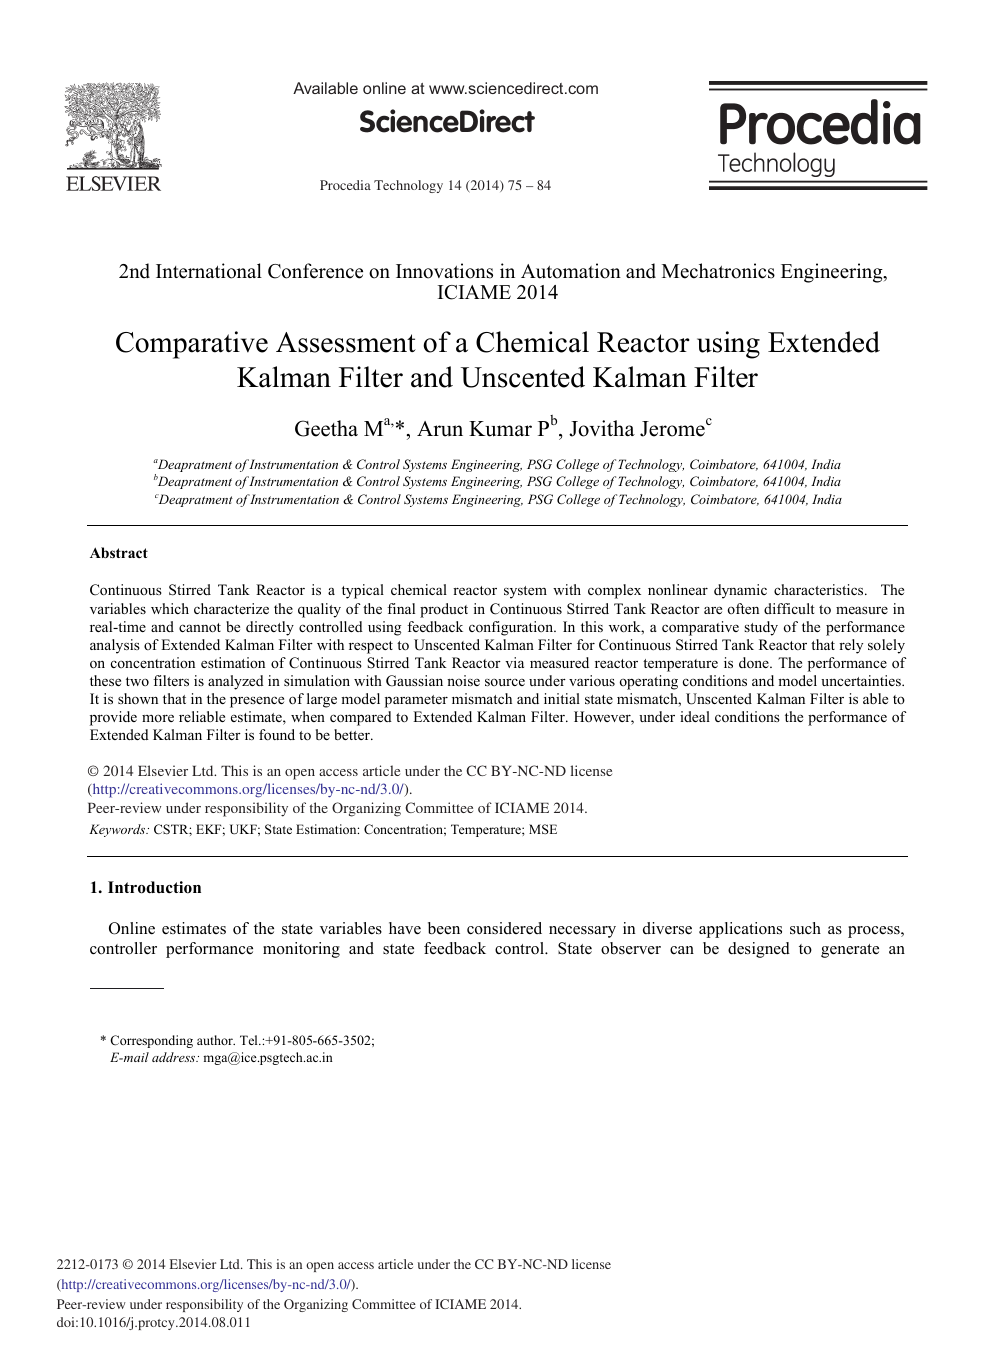 Comparative Assessment of a Chemical Reactor Using Extended